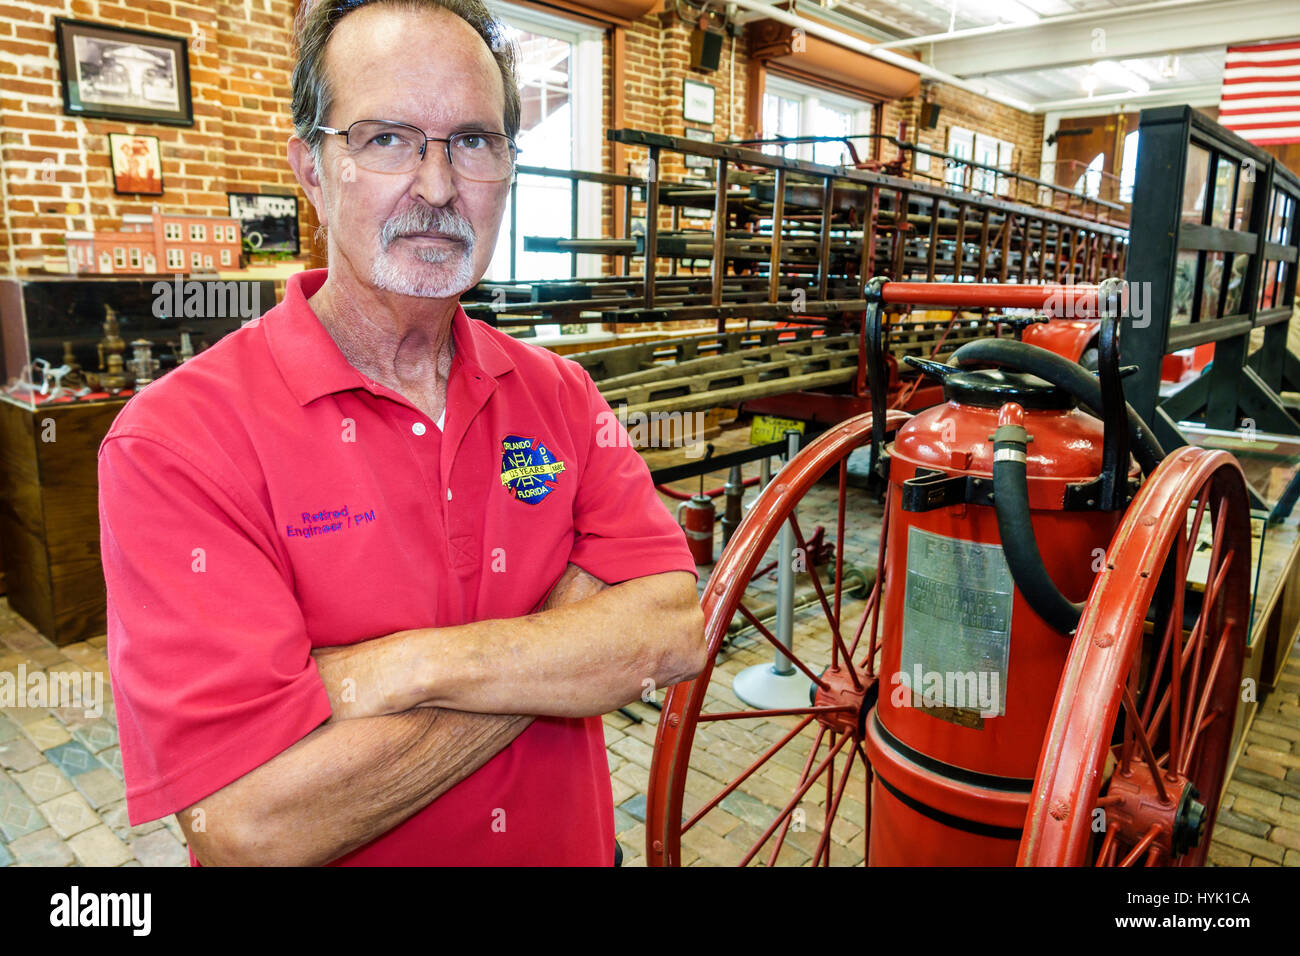 Orlando Florida Loch Haven Park cultural park Orlando Fire Museum firehouse interior man retired firefighter volunteer - Stock Image